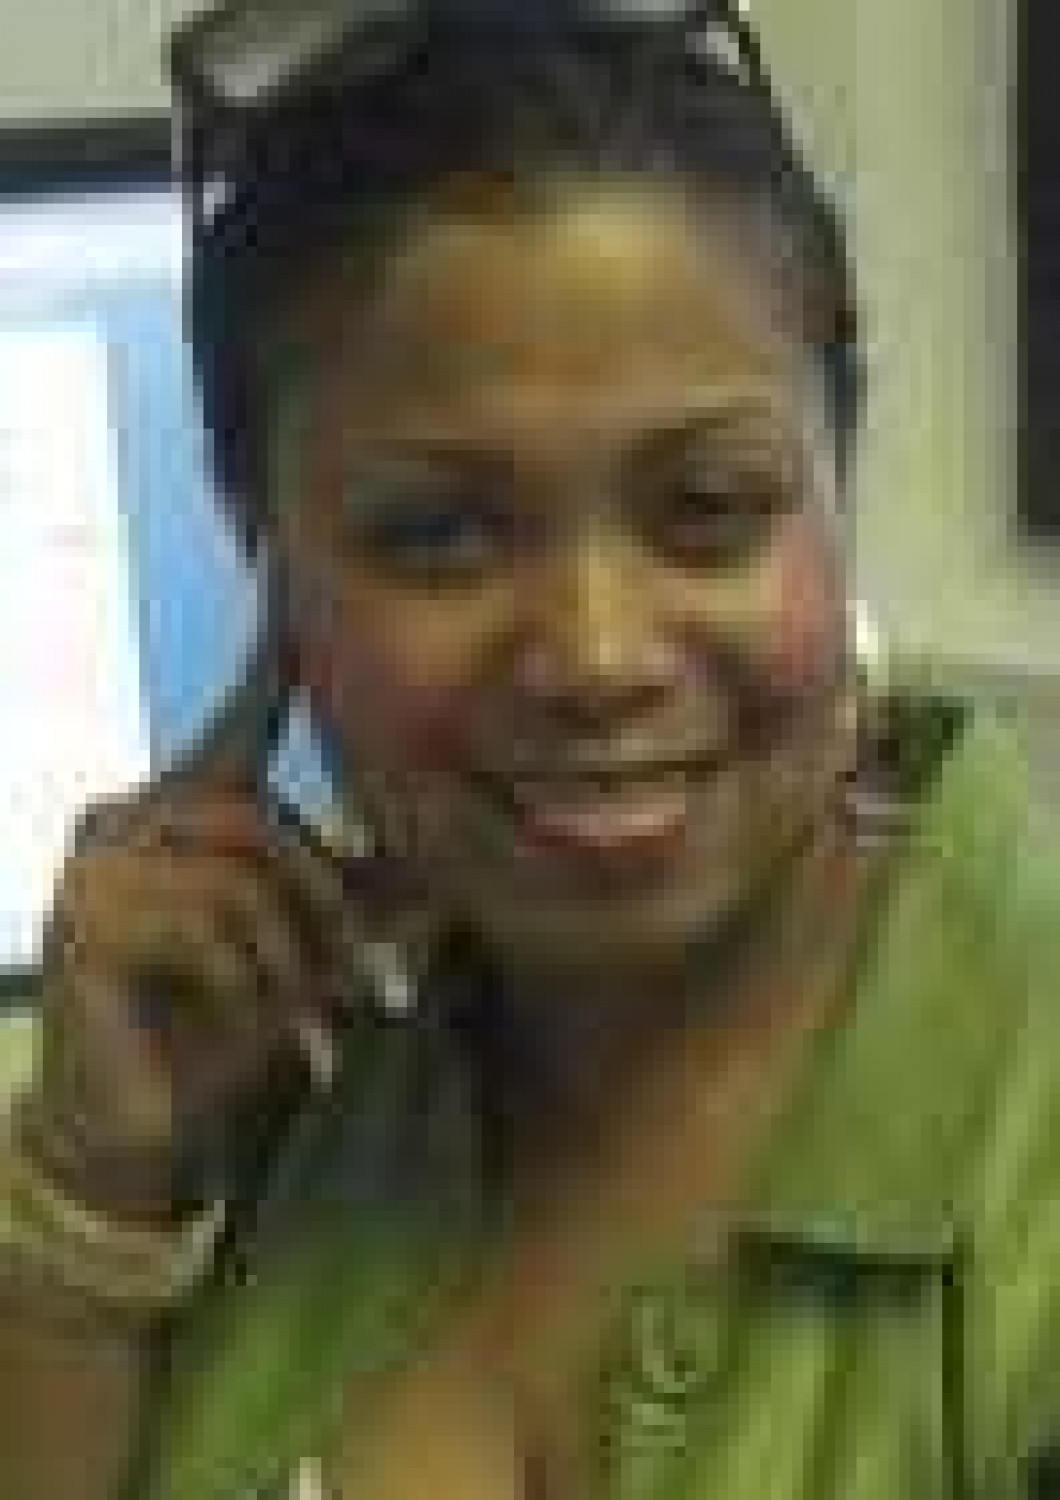 Ms. Delsa Johnson Fauconier, LCSW-R